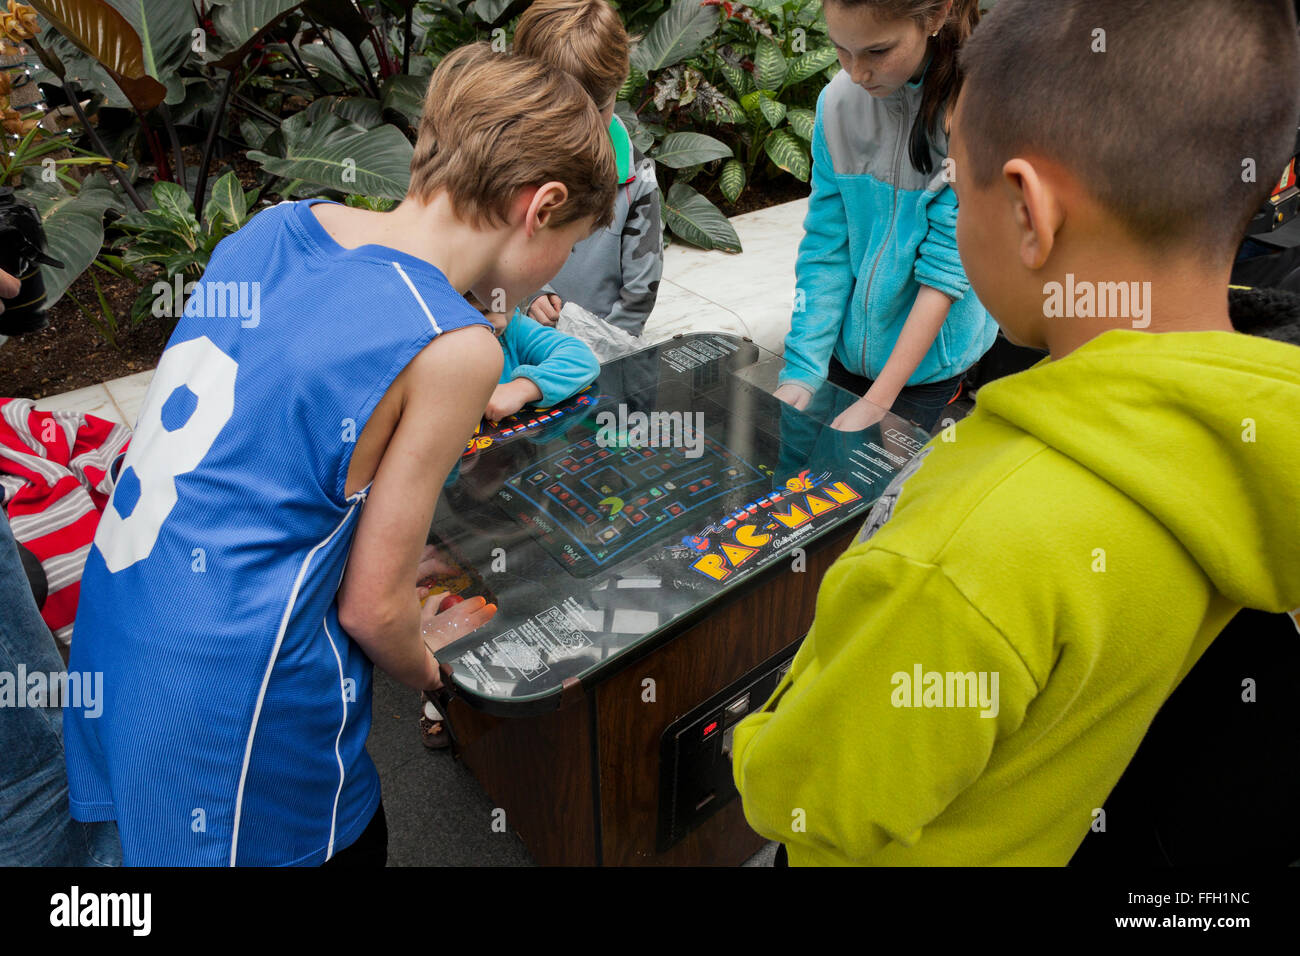 Young children playing the classic Pac-Man video arcade game - USA - Stock Image